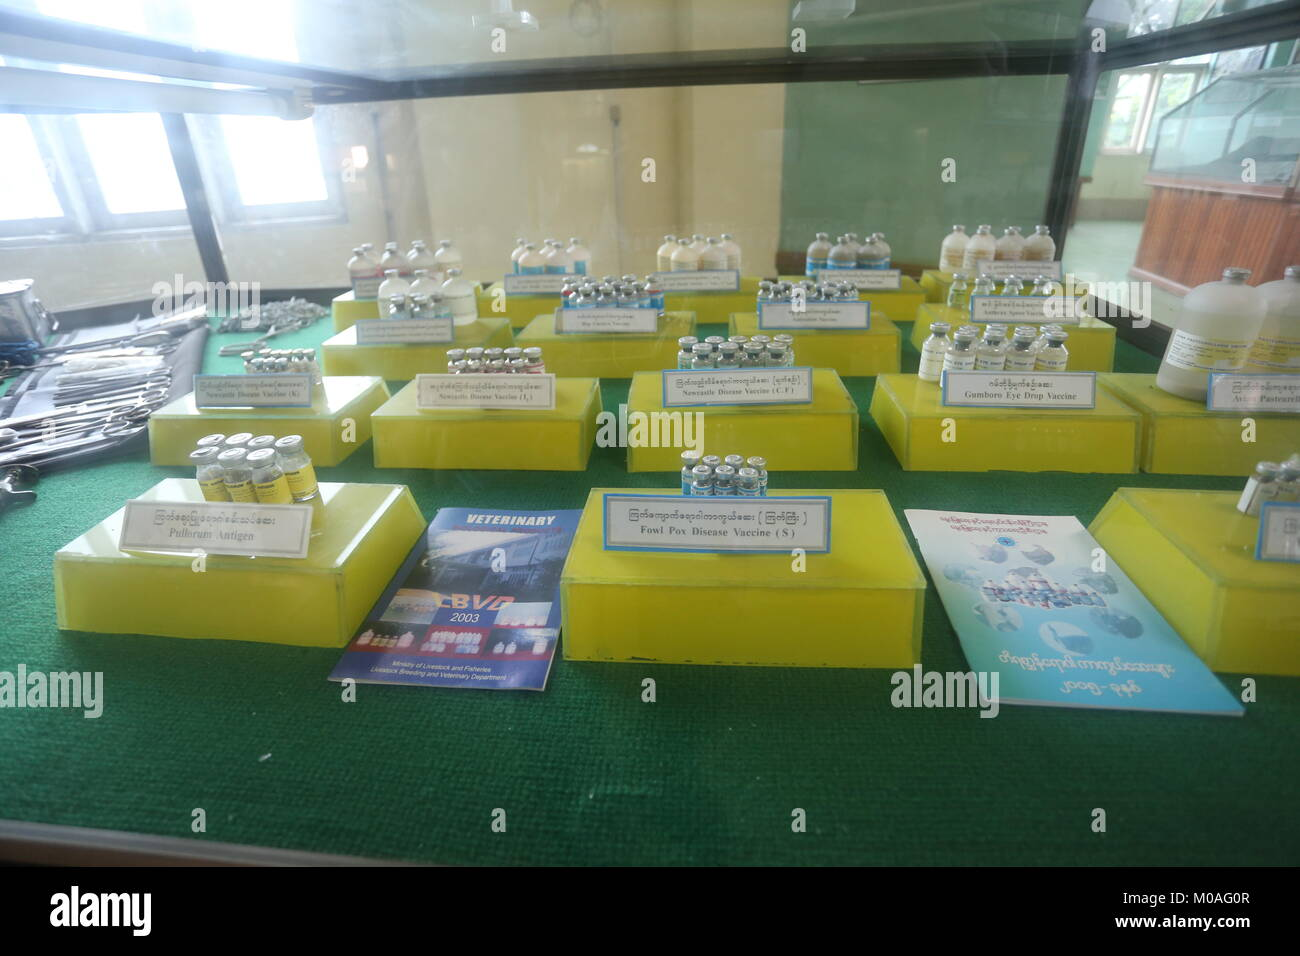 The Drug Elimination Museum in Yangon is filled with displays warning of the dangers and risks of drug addiction. Stock Photo